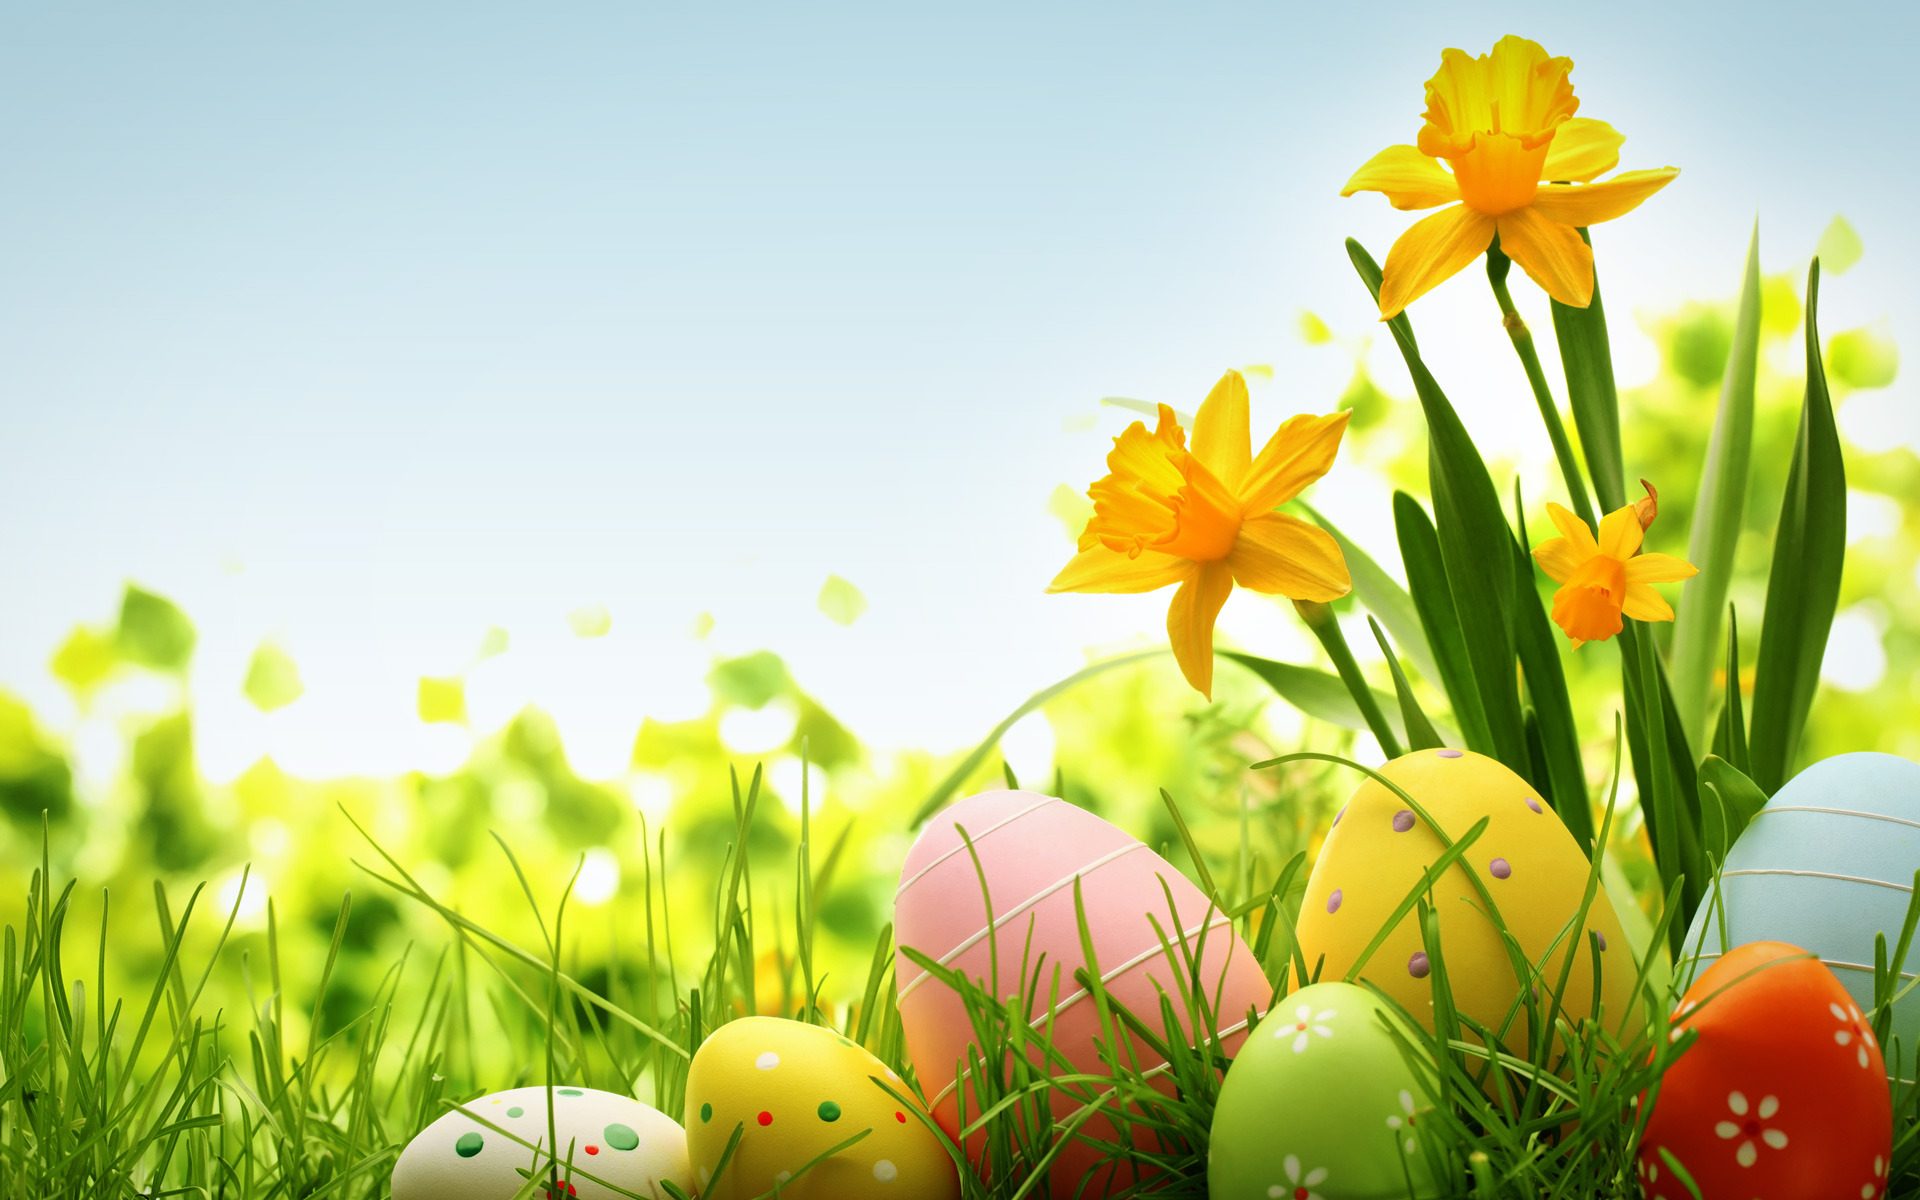 Easter Wallpapers Easter Backgrounds Full HD wallpapers 2014 1920x1200